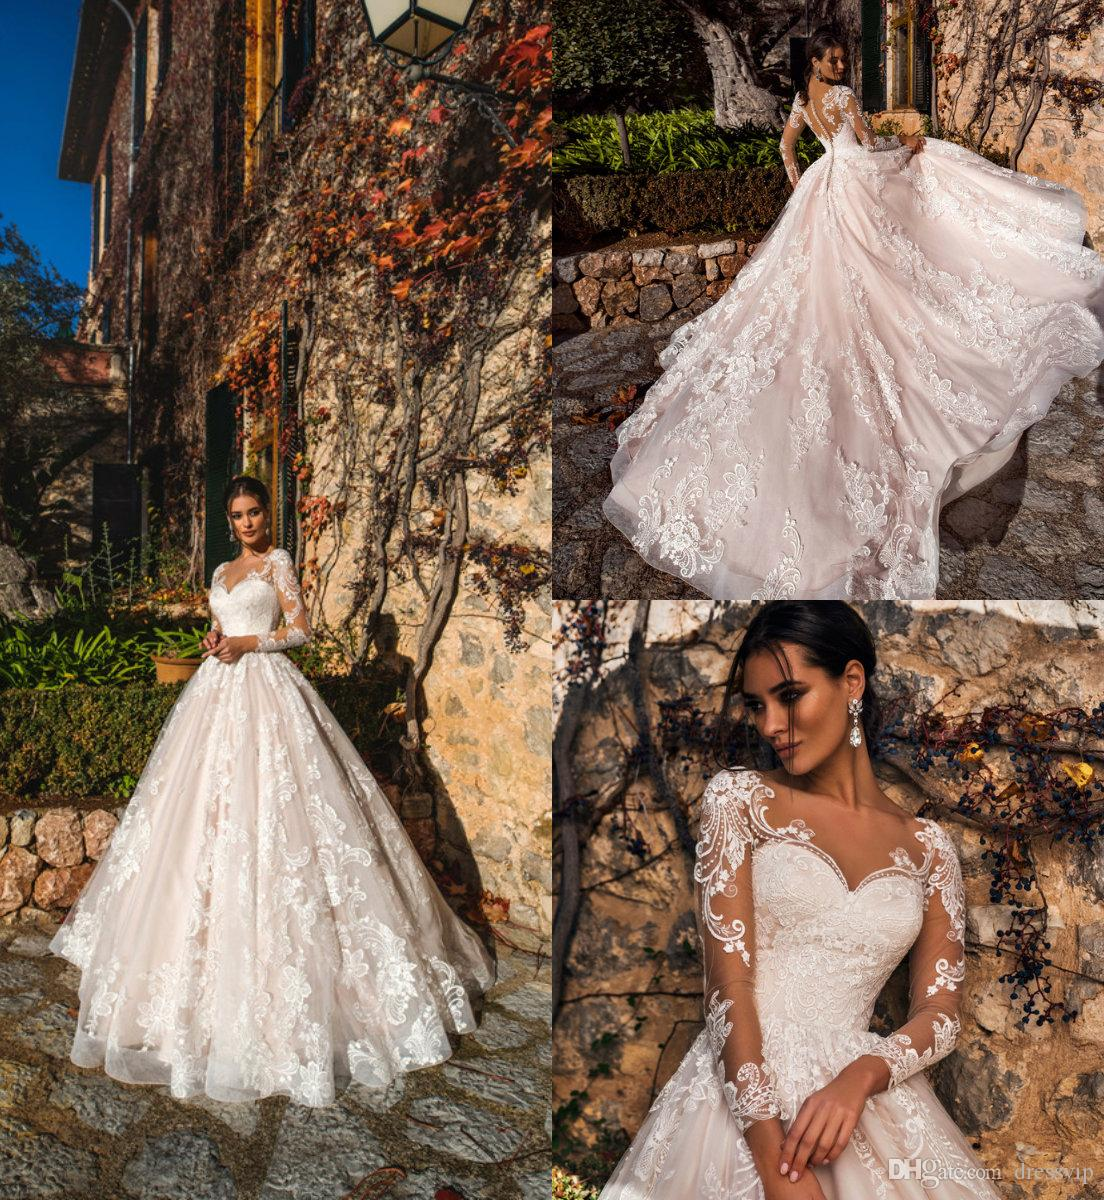 f8c9423c7da9 Discount 2019 A Line Beach Wedding Dresses V Neck Lace Long Sleeves Blush  Pink Tulle Custom Made Country Bridal Gowns Plus Size Wedding Dress Vintage  ...